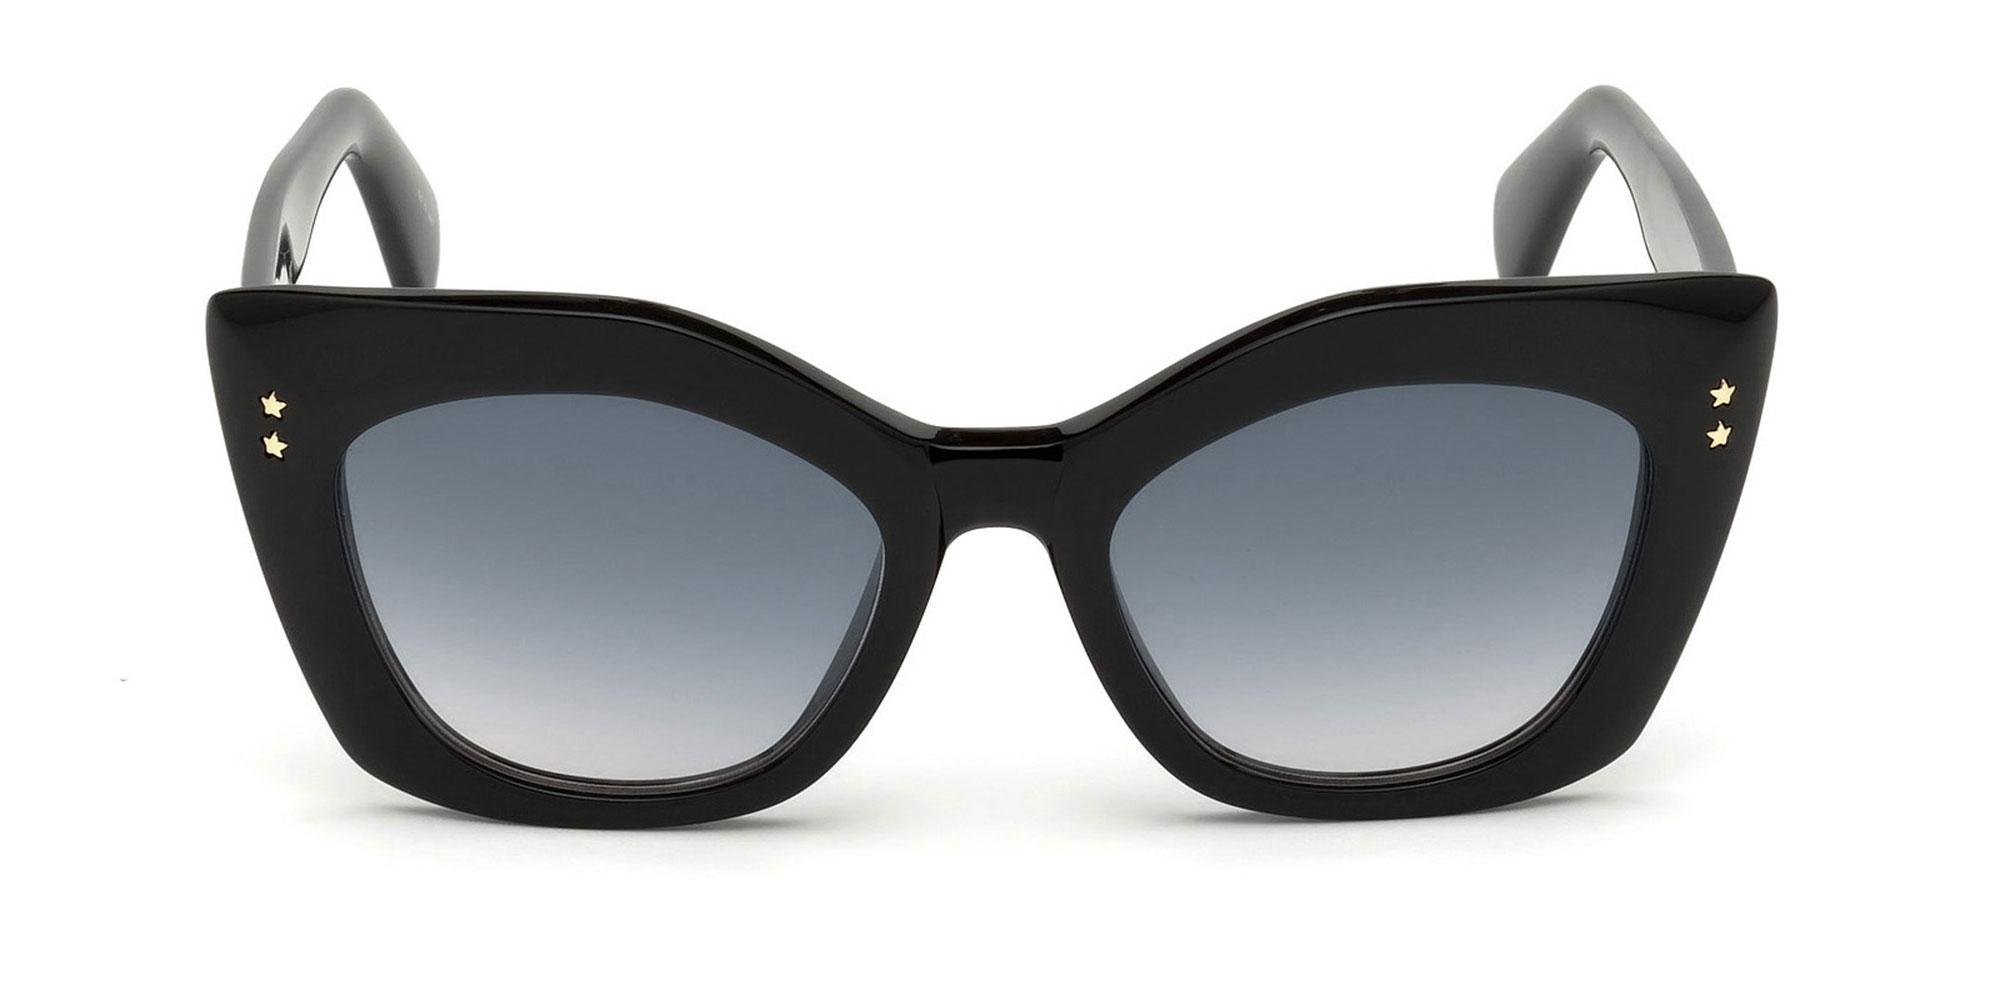 01B JC820S Sunglasses, Just Cavalli